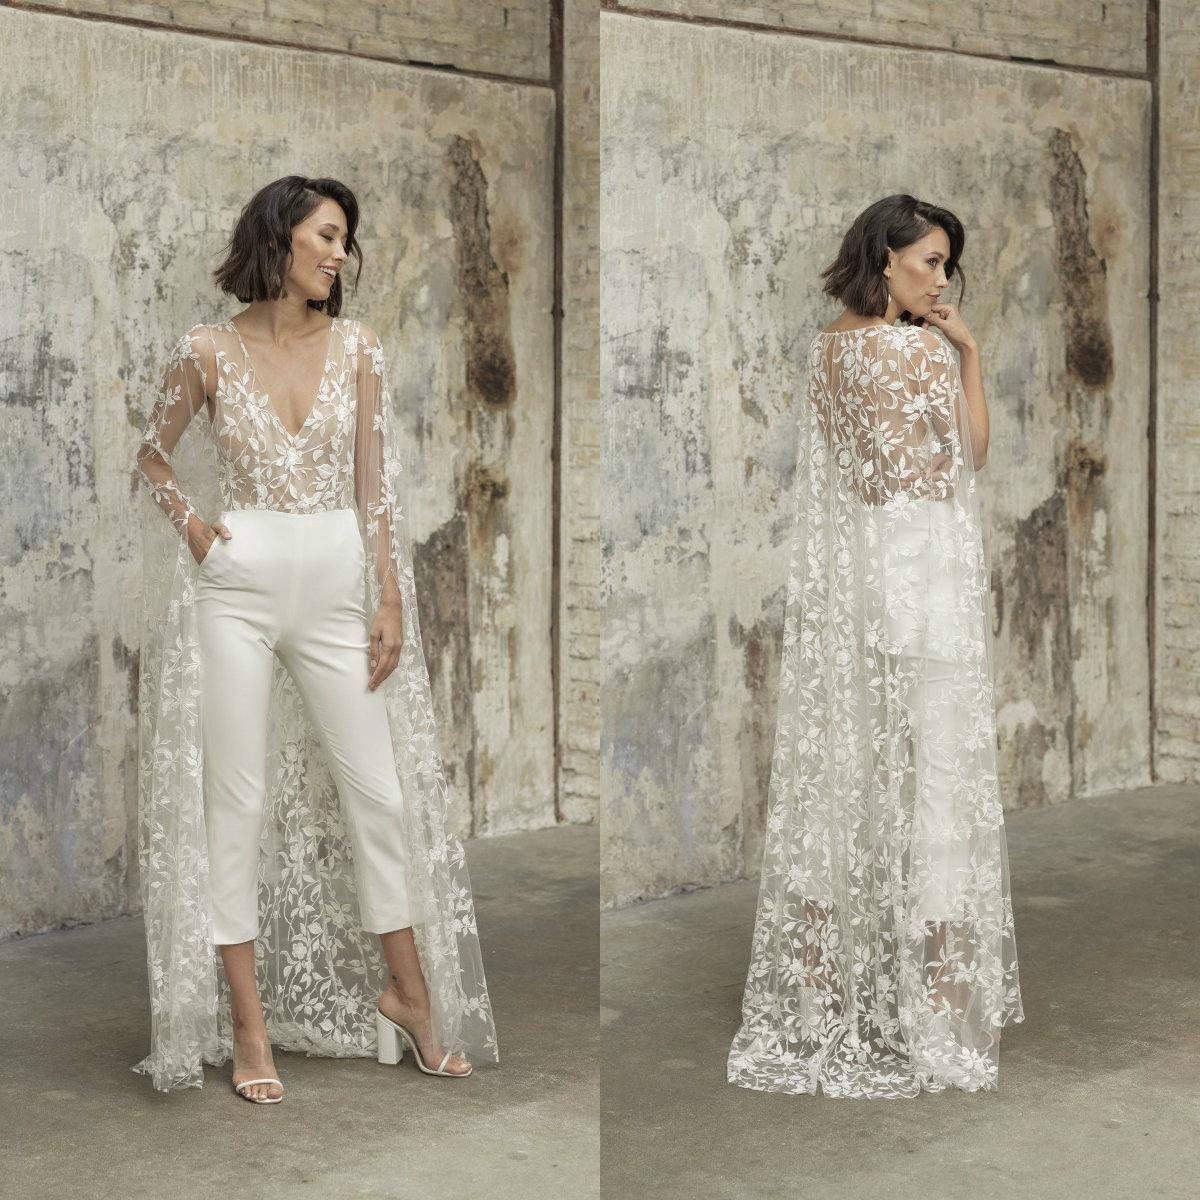 Lace Stain Wedding Jumpsuit with Long Cape Jacket 2021 Sexy V-neck Beach Garden Bridal Outfit Wedding Dress with Pant Suit